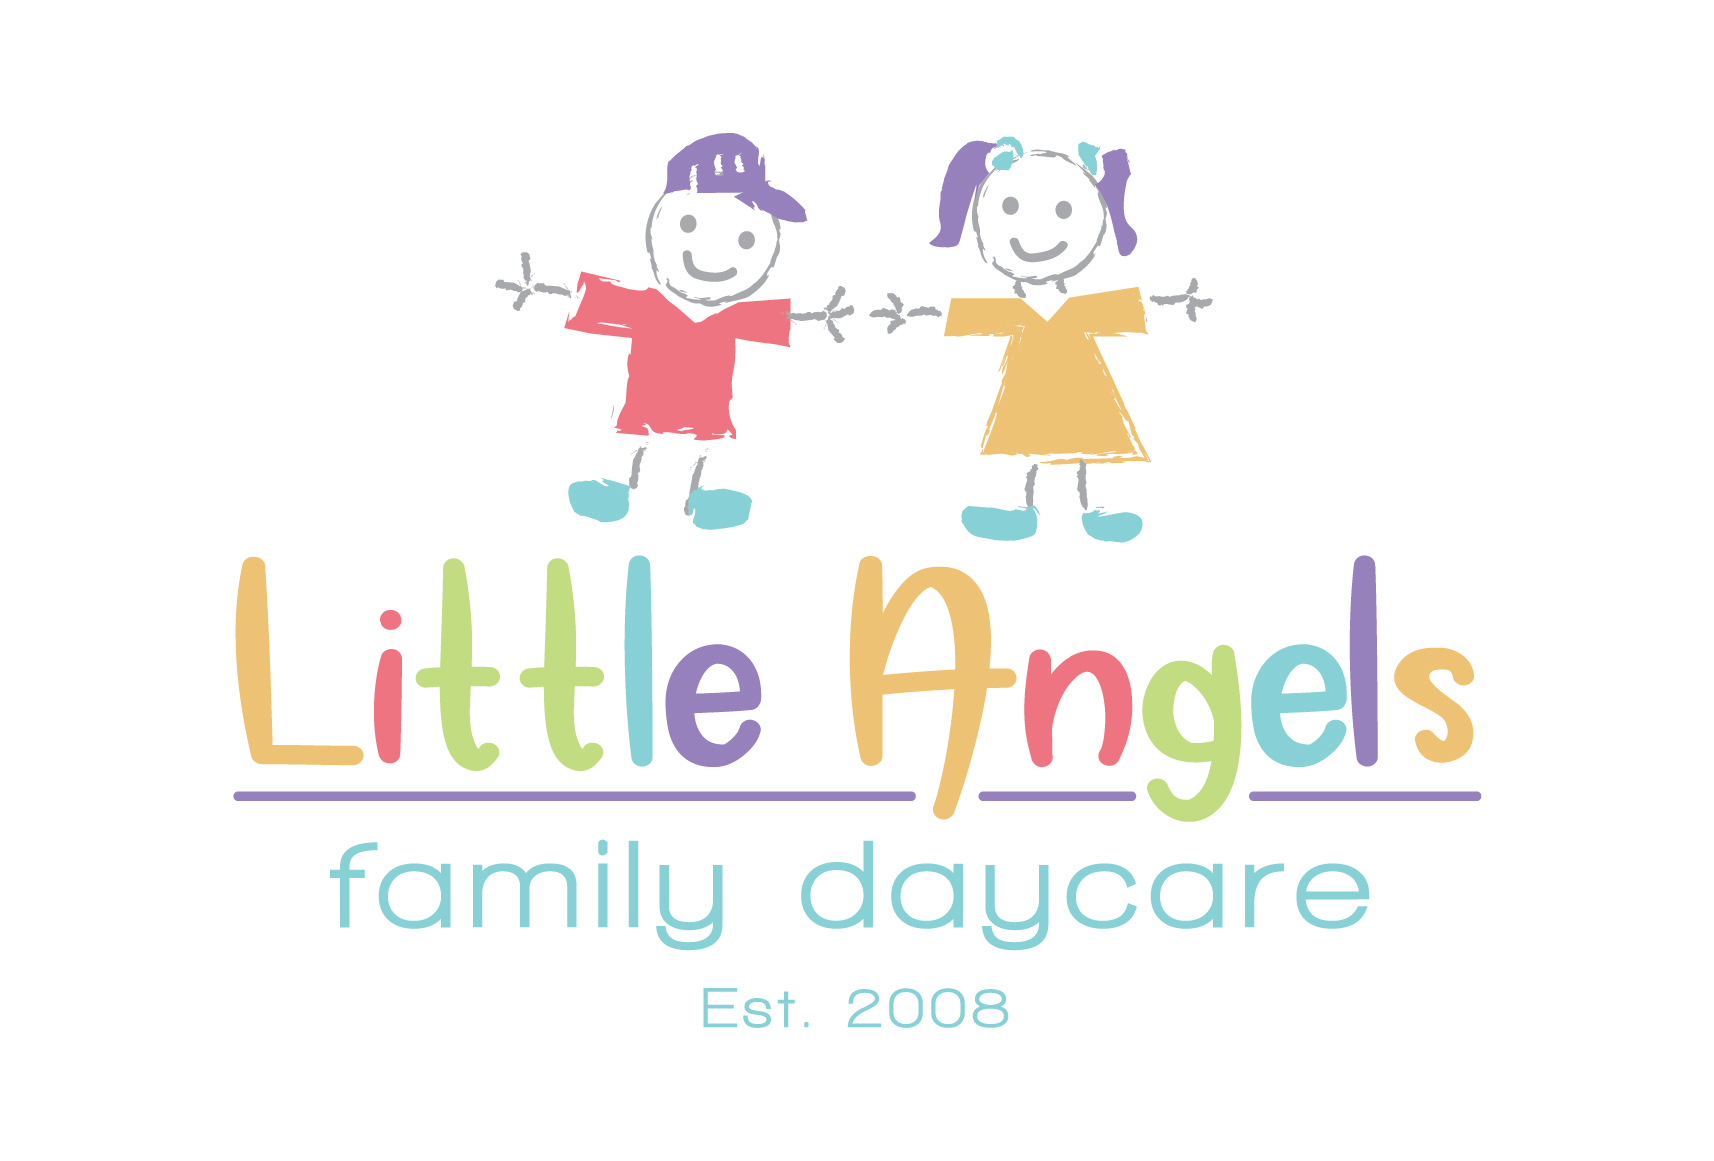 Little Angels Family Daycare